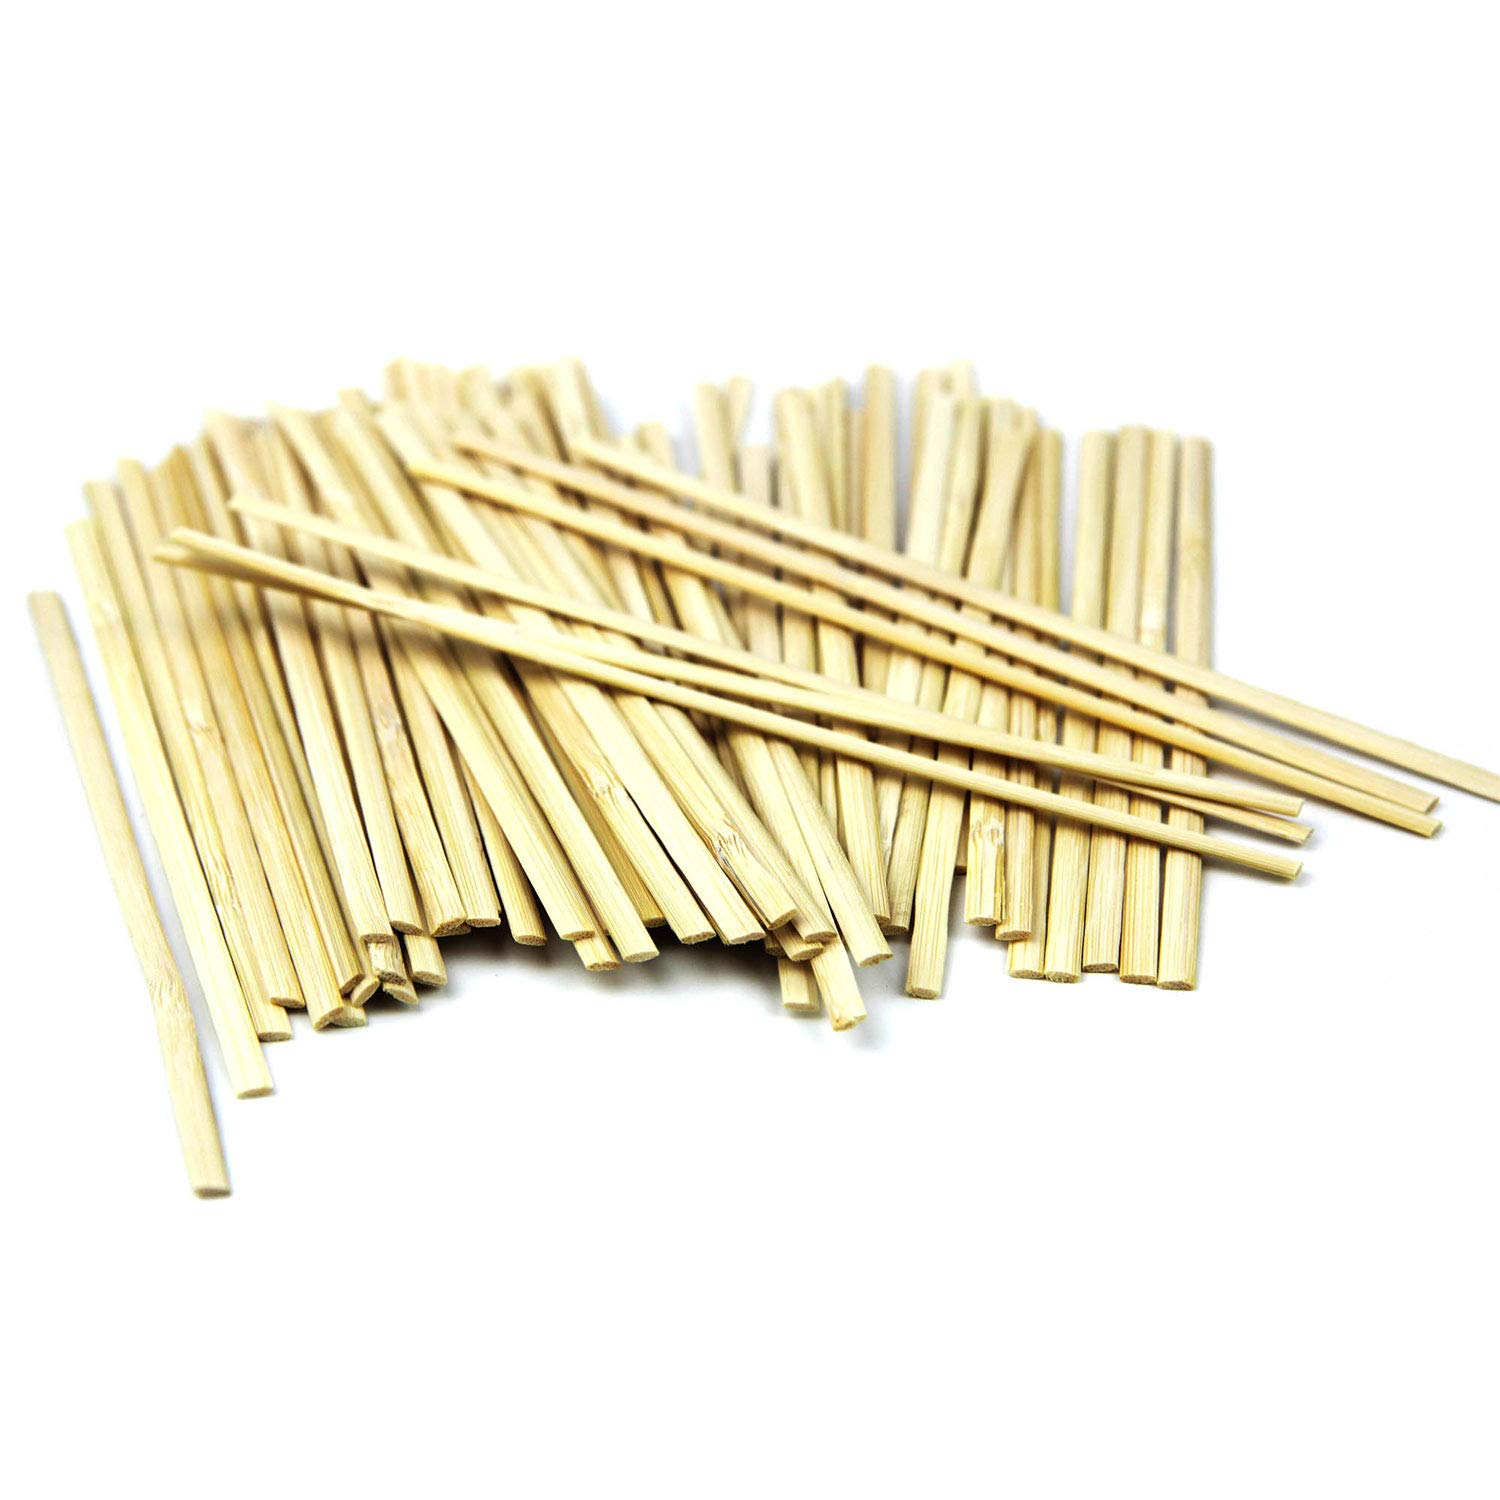 7'' Bamboo Wood Coffee Stir Sticks, Disposable Wooden Tea Drink Cocktail Mix Stirrers, Compostable Eco Friendly For Hot Cold Beverages - 1000 Pack